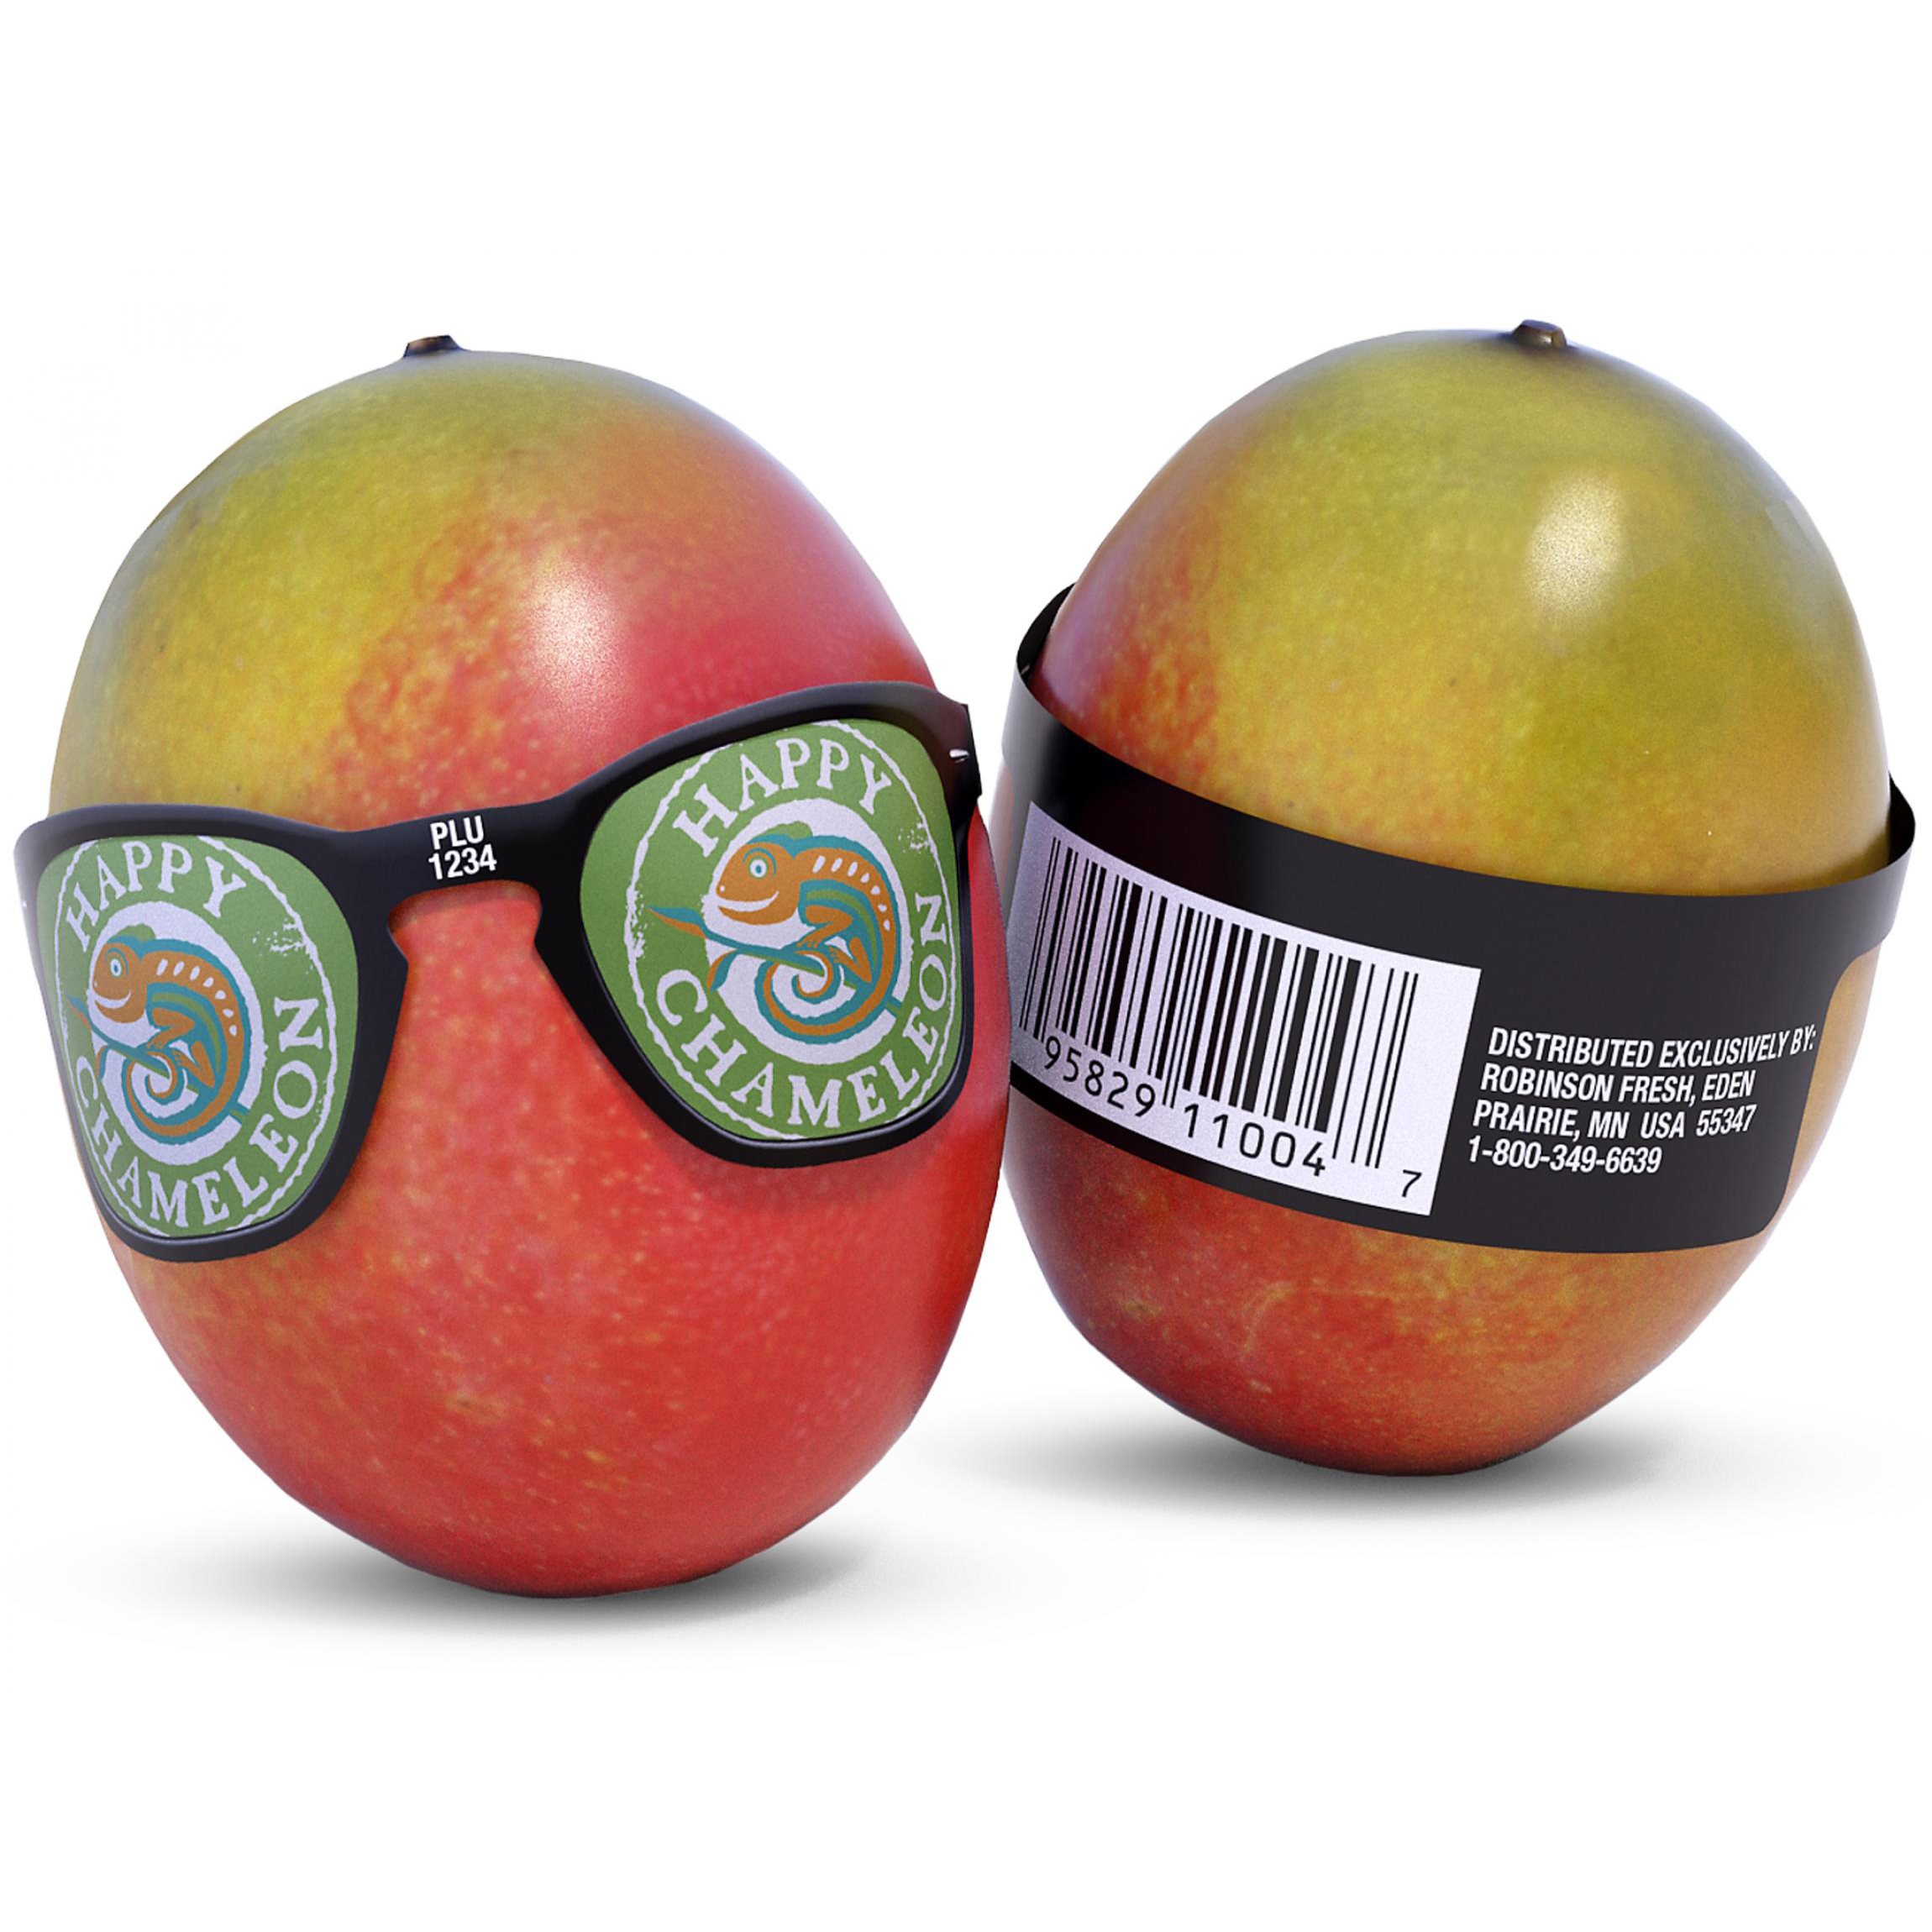 3D render for unique Cool Mangos packaging.